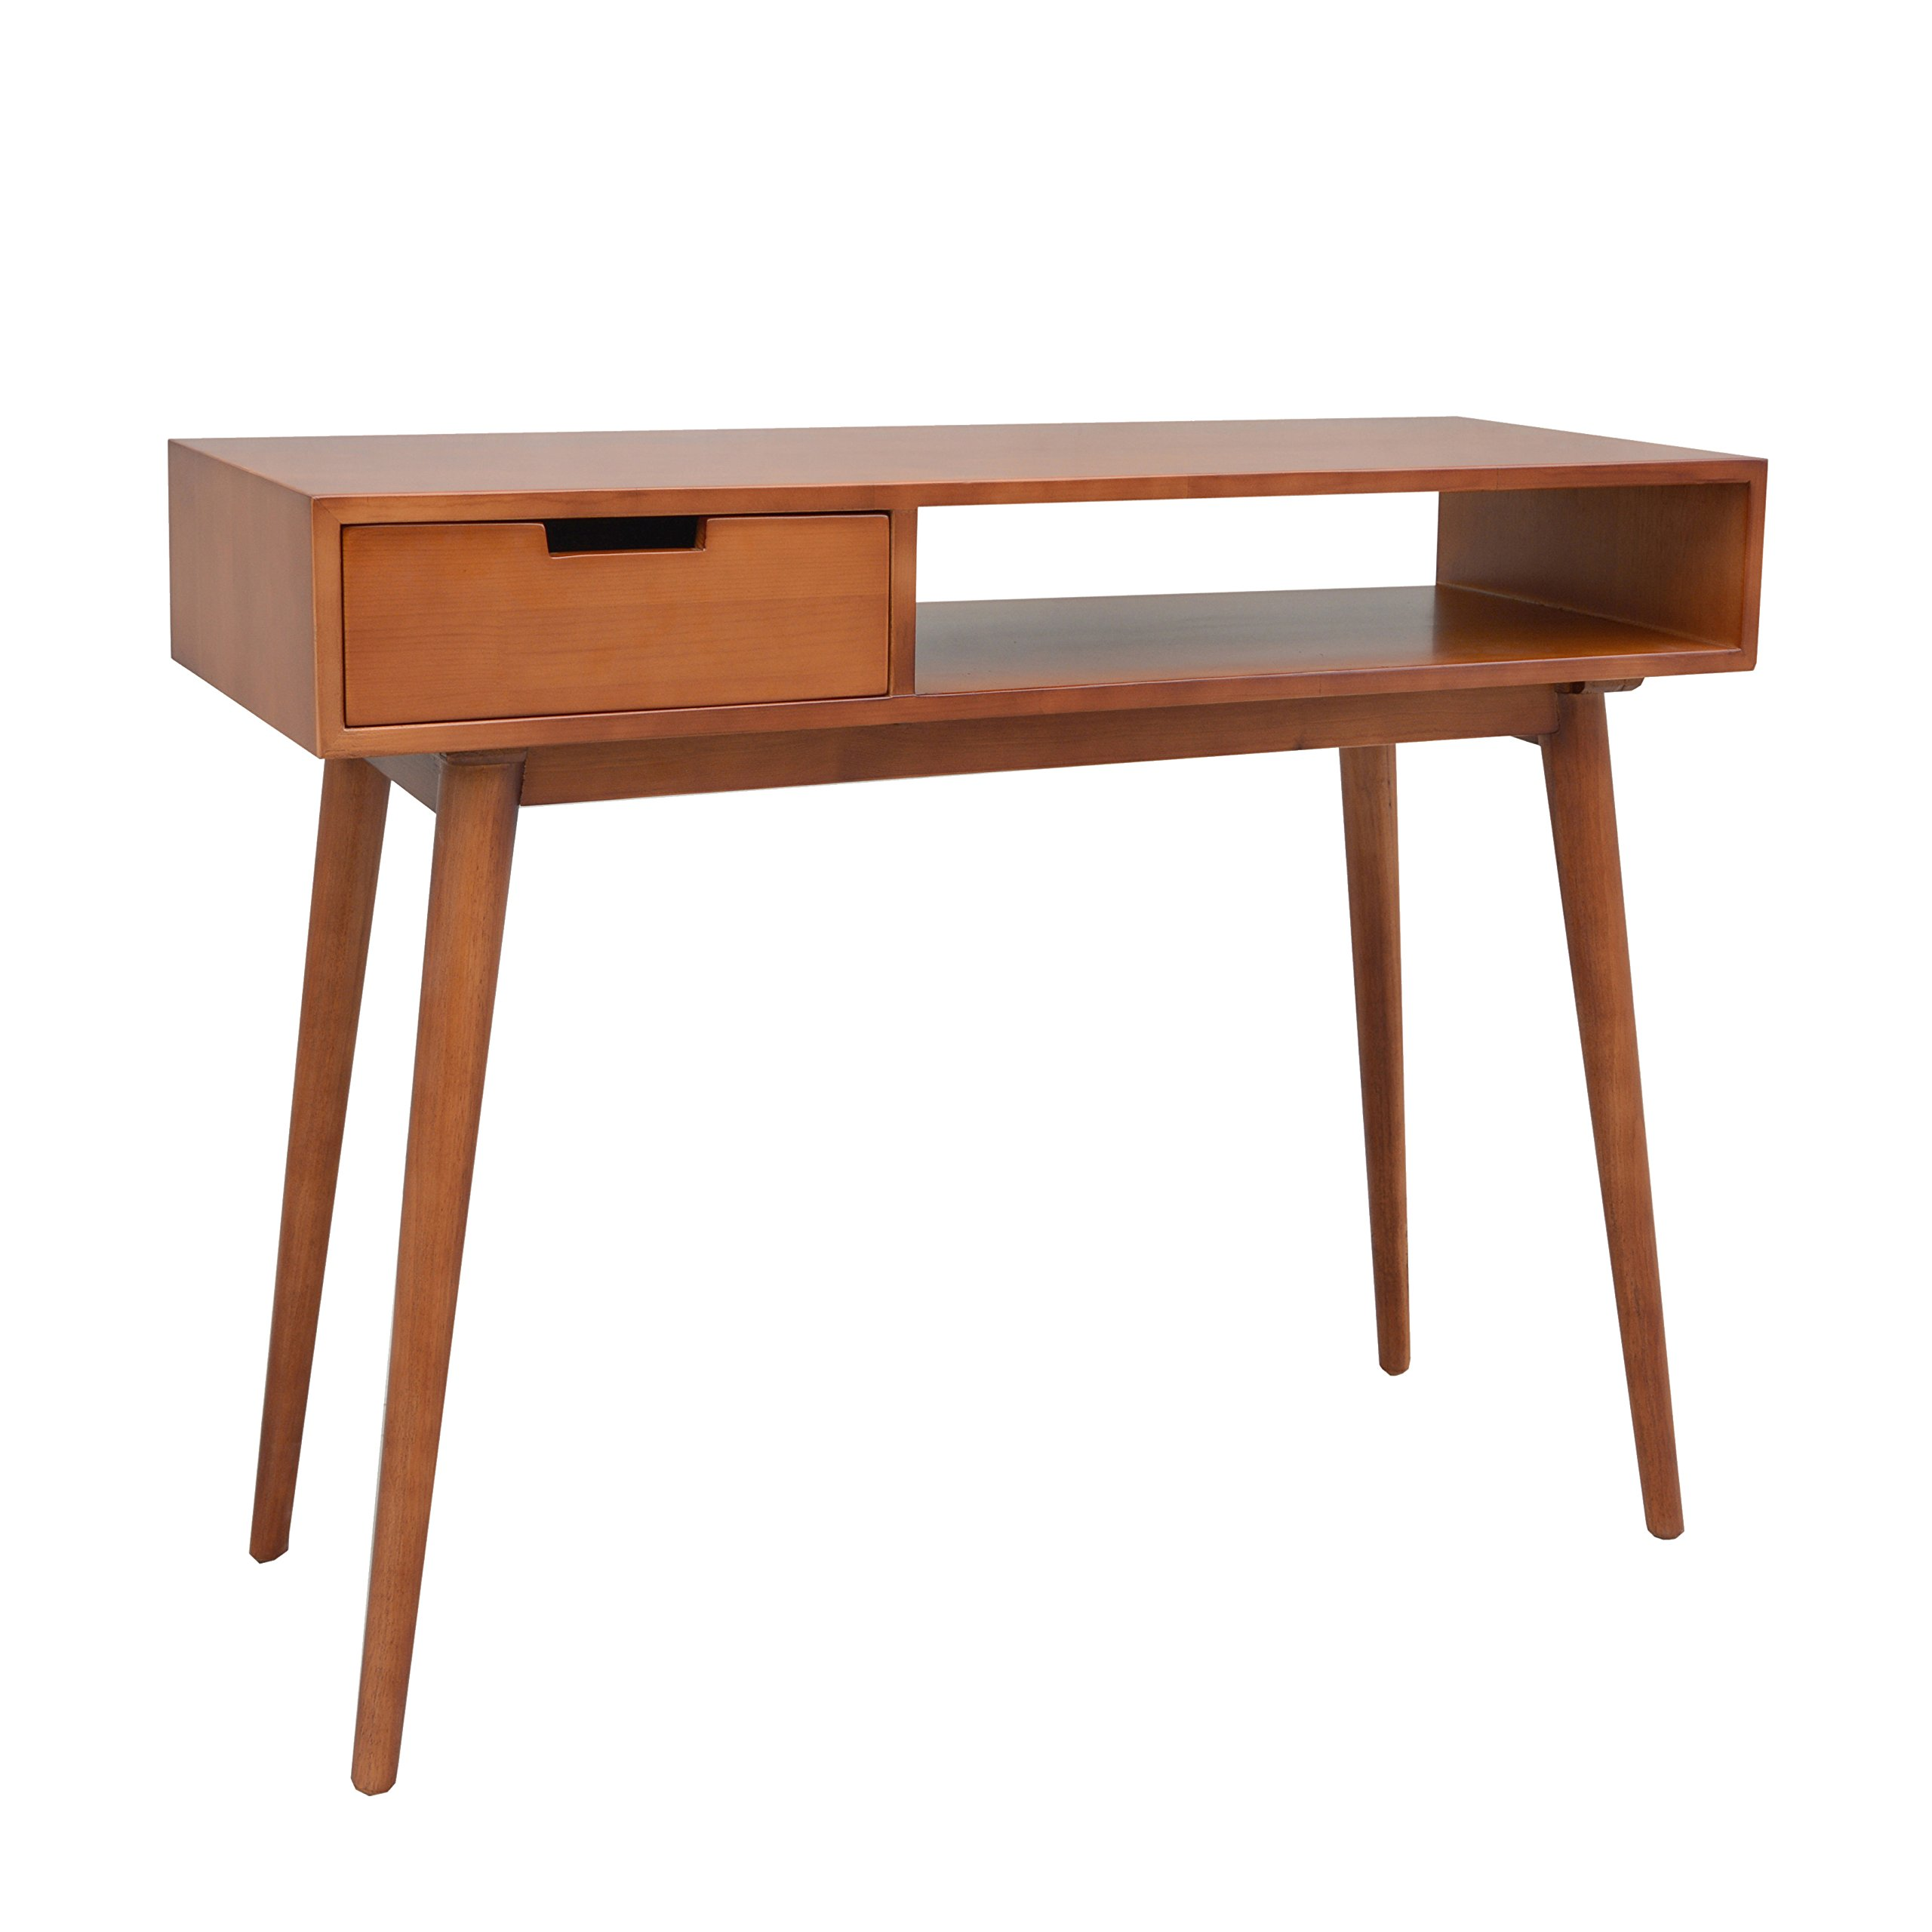 Porthos Home Aceline Mid-Century Console Table, Natural by Porthos Home